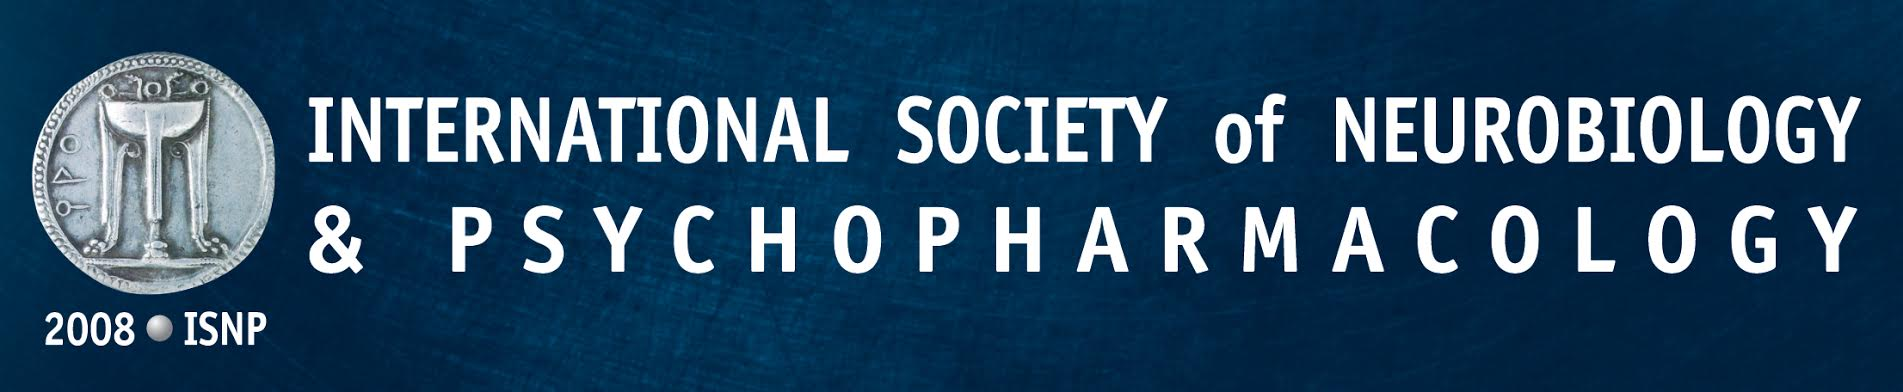 logo for International Society on Neurobiology and Psychopharmacology